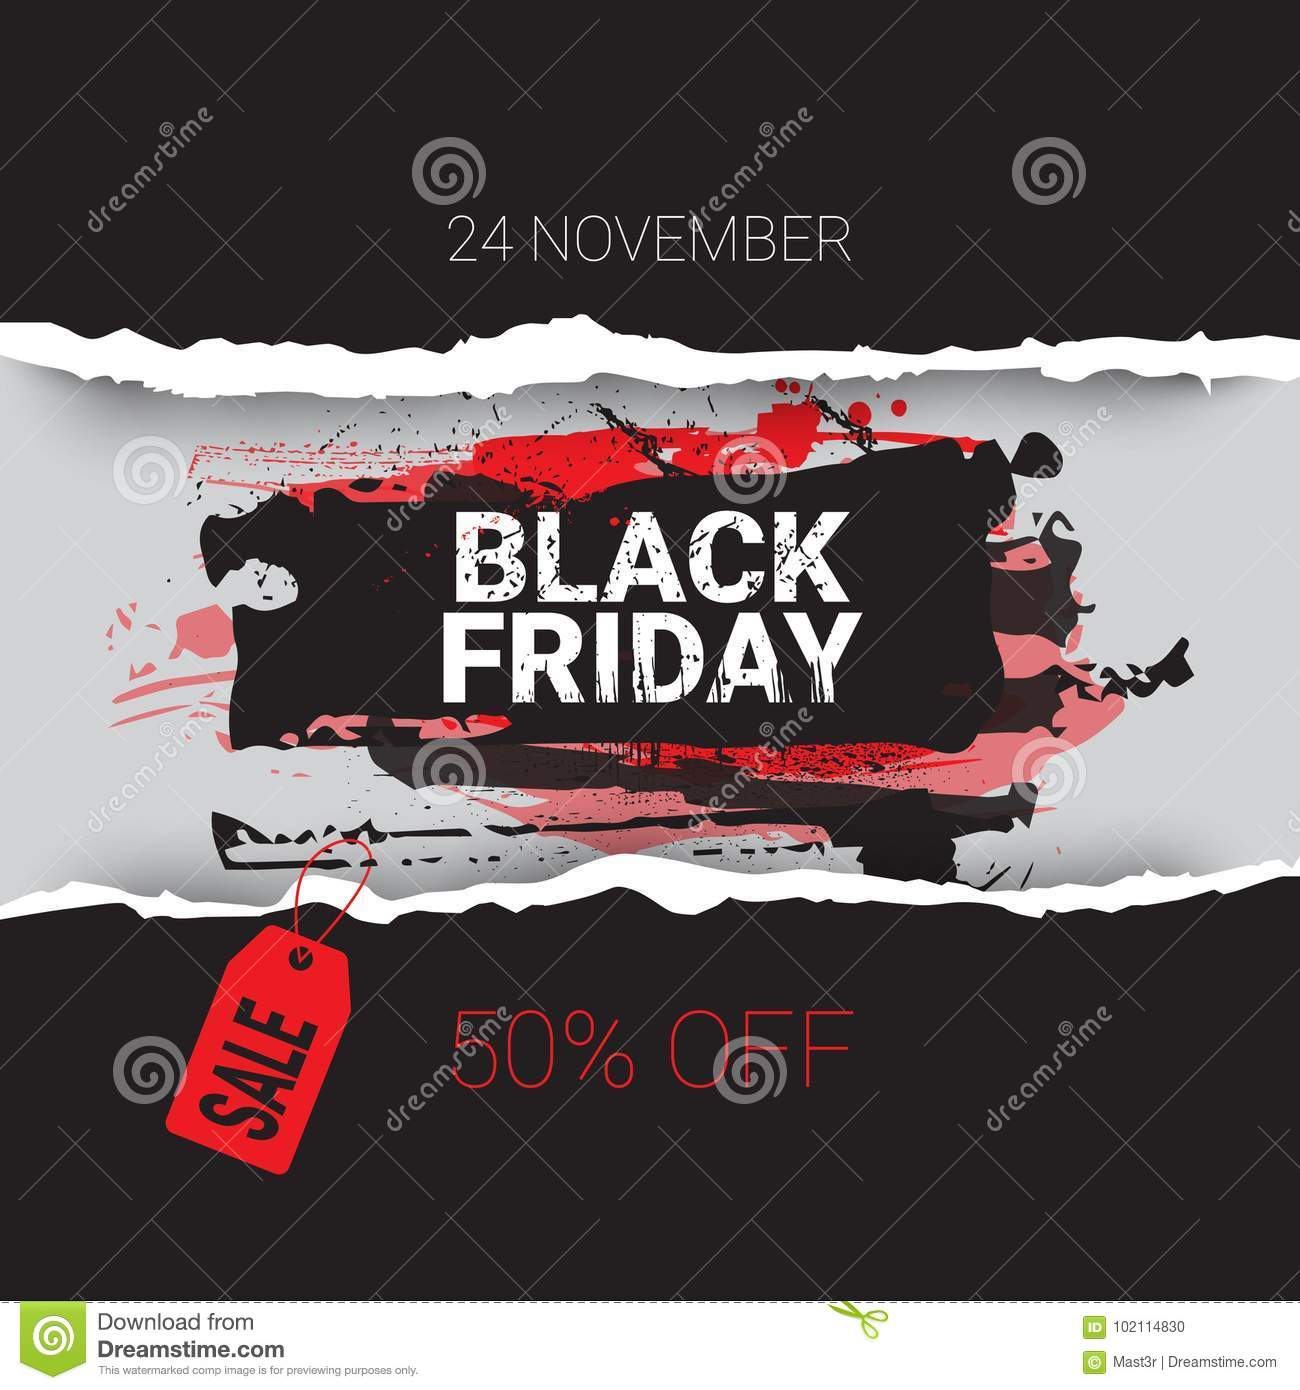 Black Friday Torn Curved Wrapped Paper 24 November Sale With Red Tag Banner Shopping Discount Concept